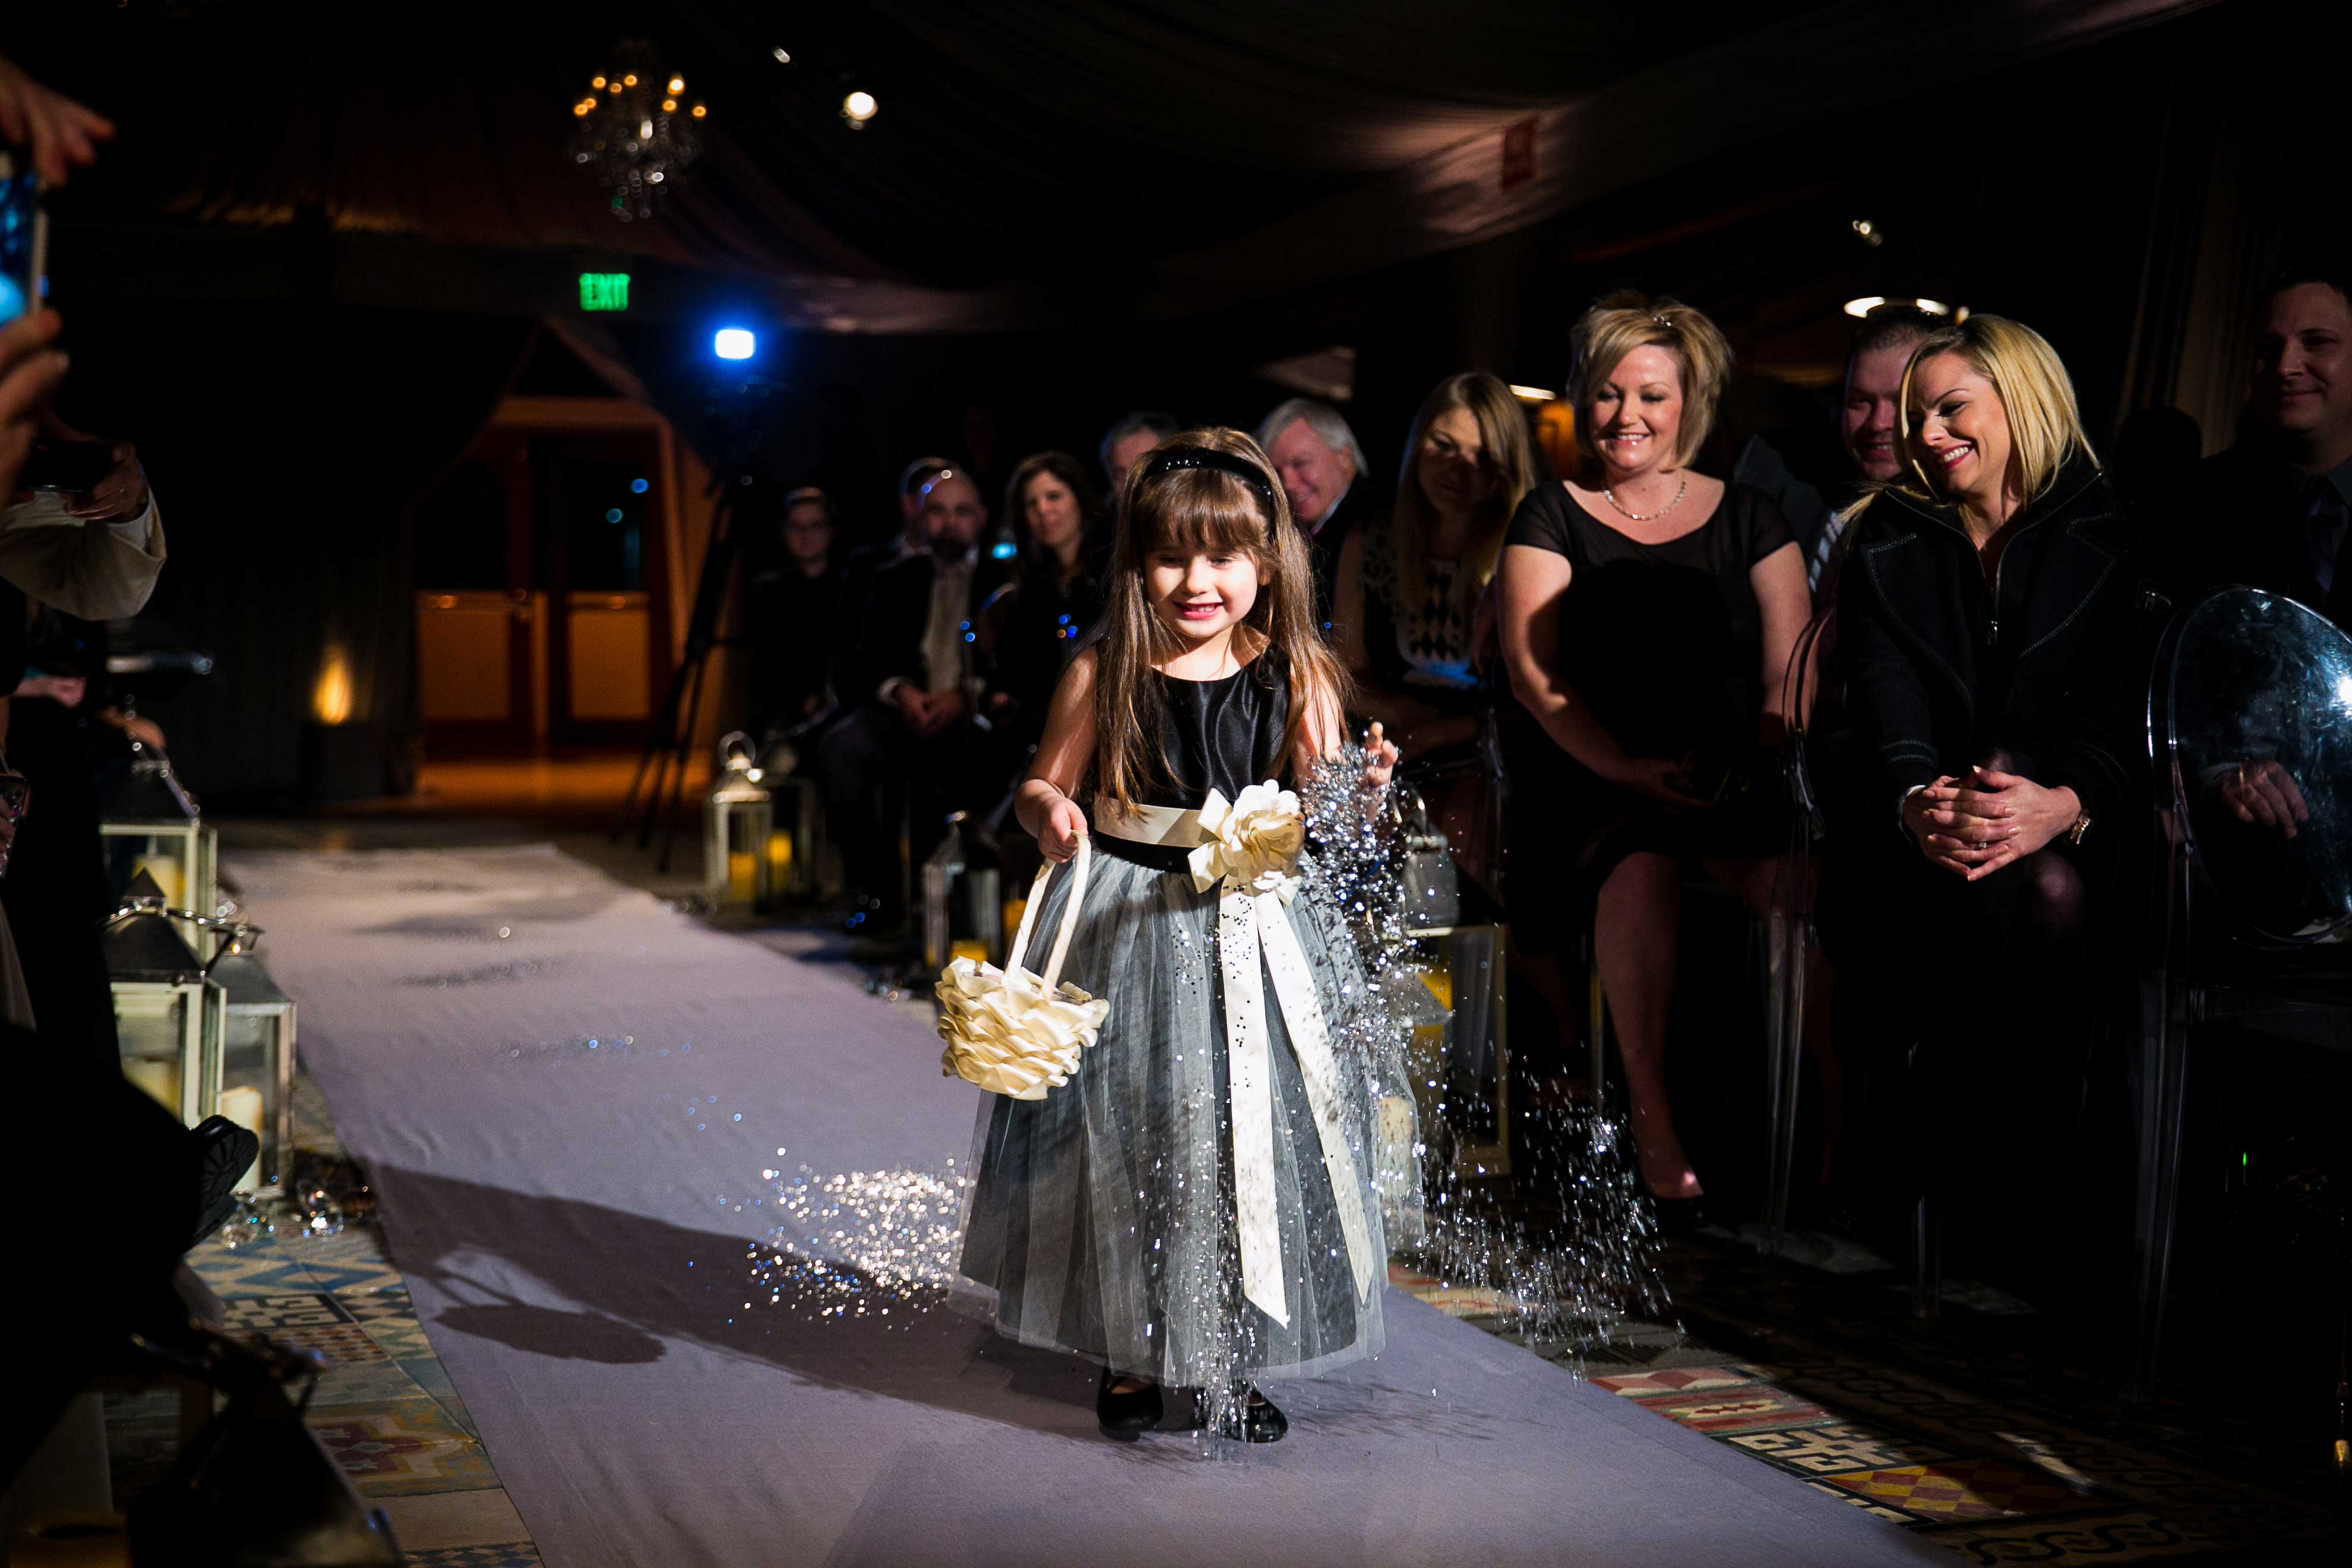 flower girl throws confetti at new year's eve wedding